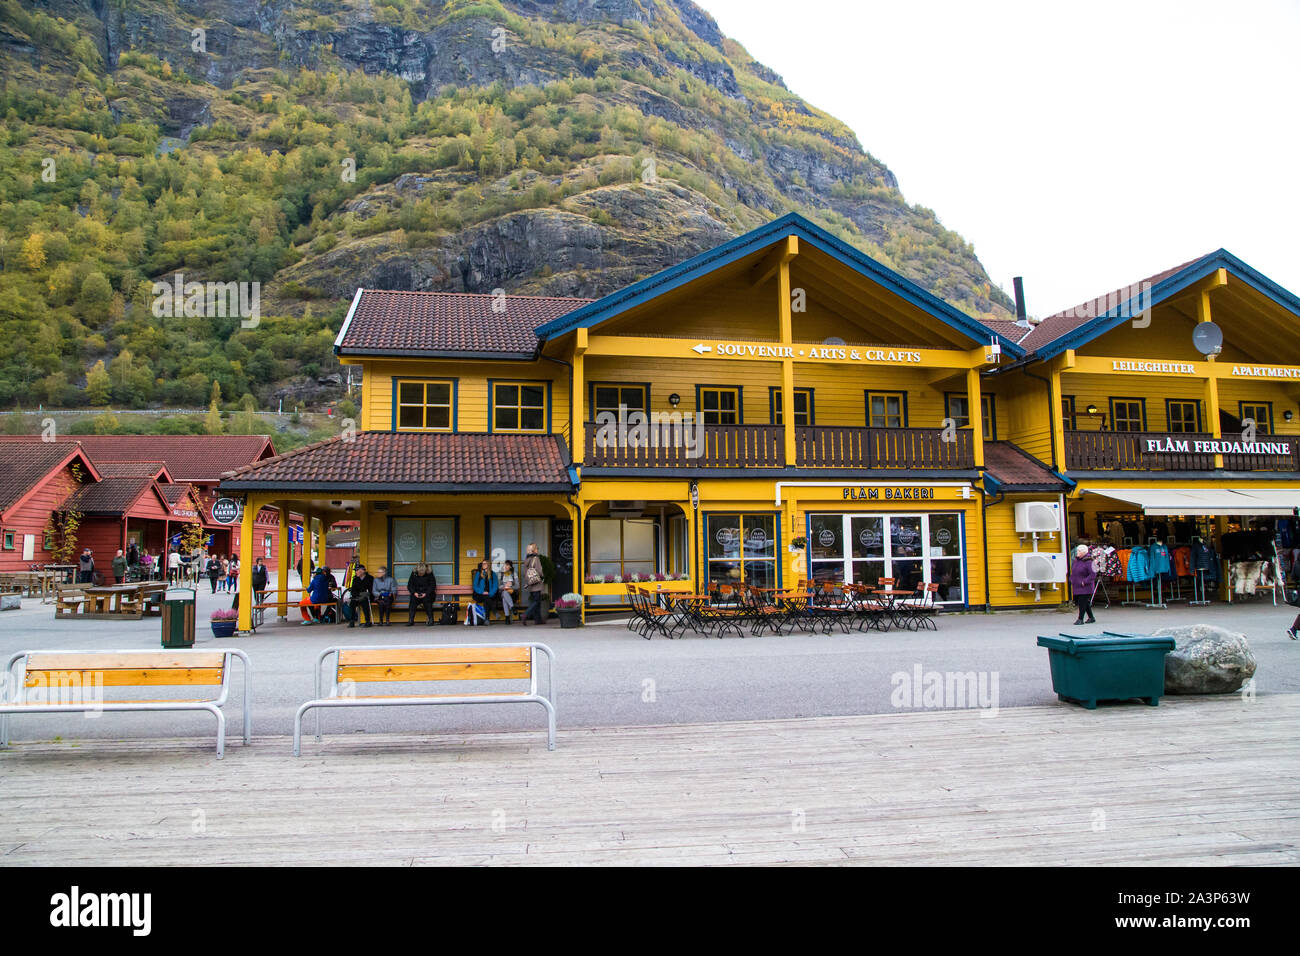 Two Empty Benches Sit In Front Of A Souvenir Shop In Flam Norway Stock Photo Alamy